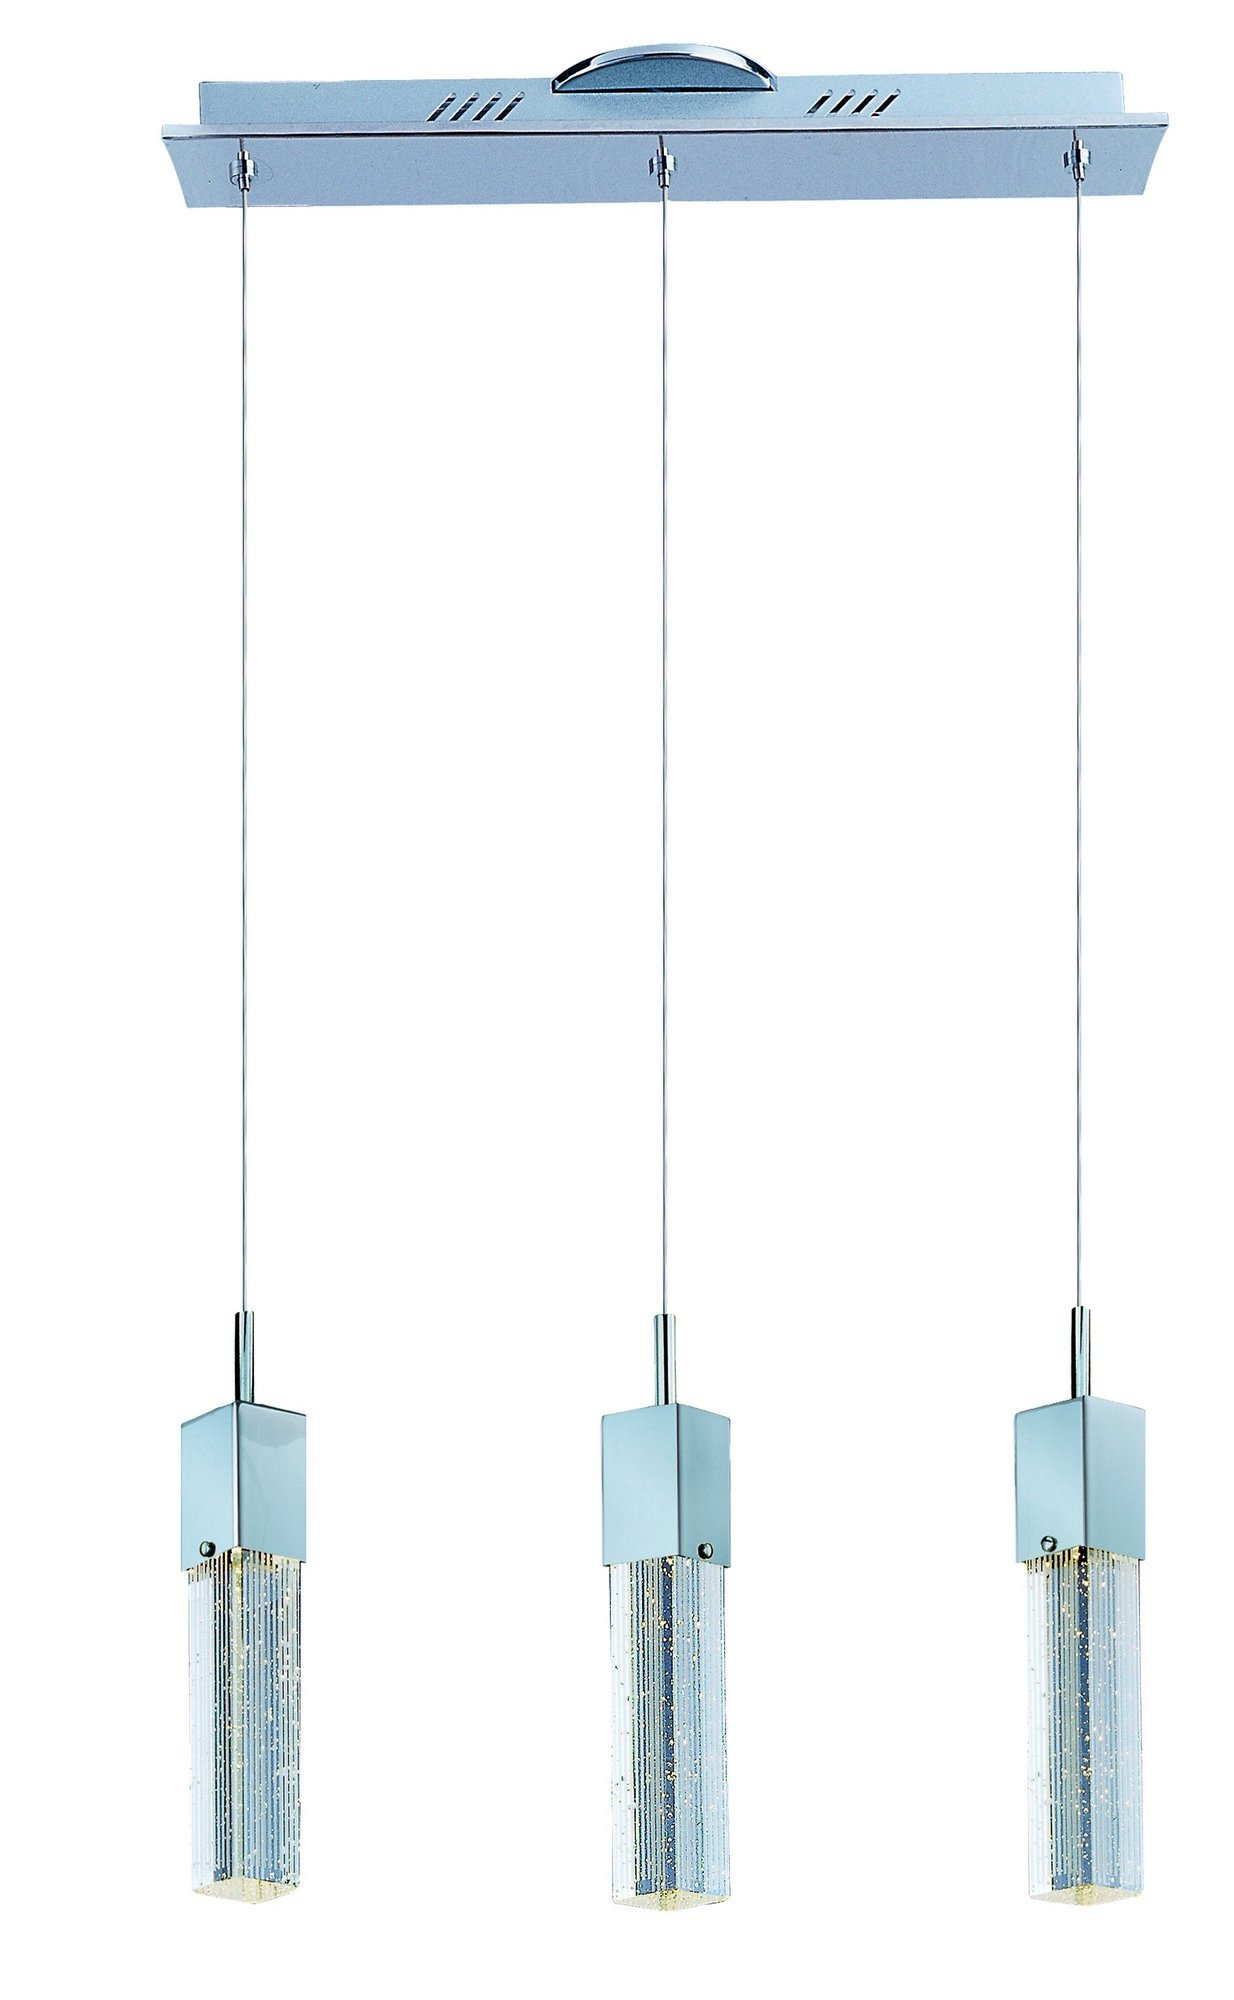 ET2 E22763-89PC Fizz III 3-Light LED Linear Pendant, Polished Chrome Finish, Etched/Bubble Glass, PCB LED Bulb, Wet Safety Rated, 3000K Color Temp., Shade Material, 1600 Rated Lumens